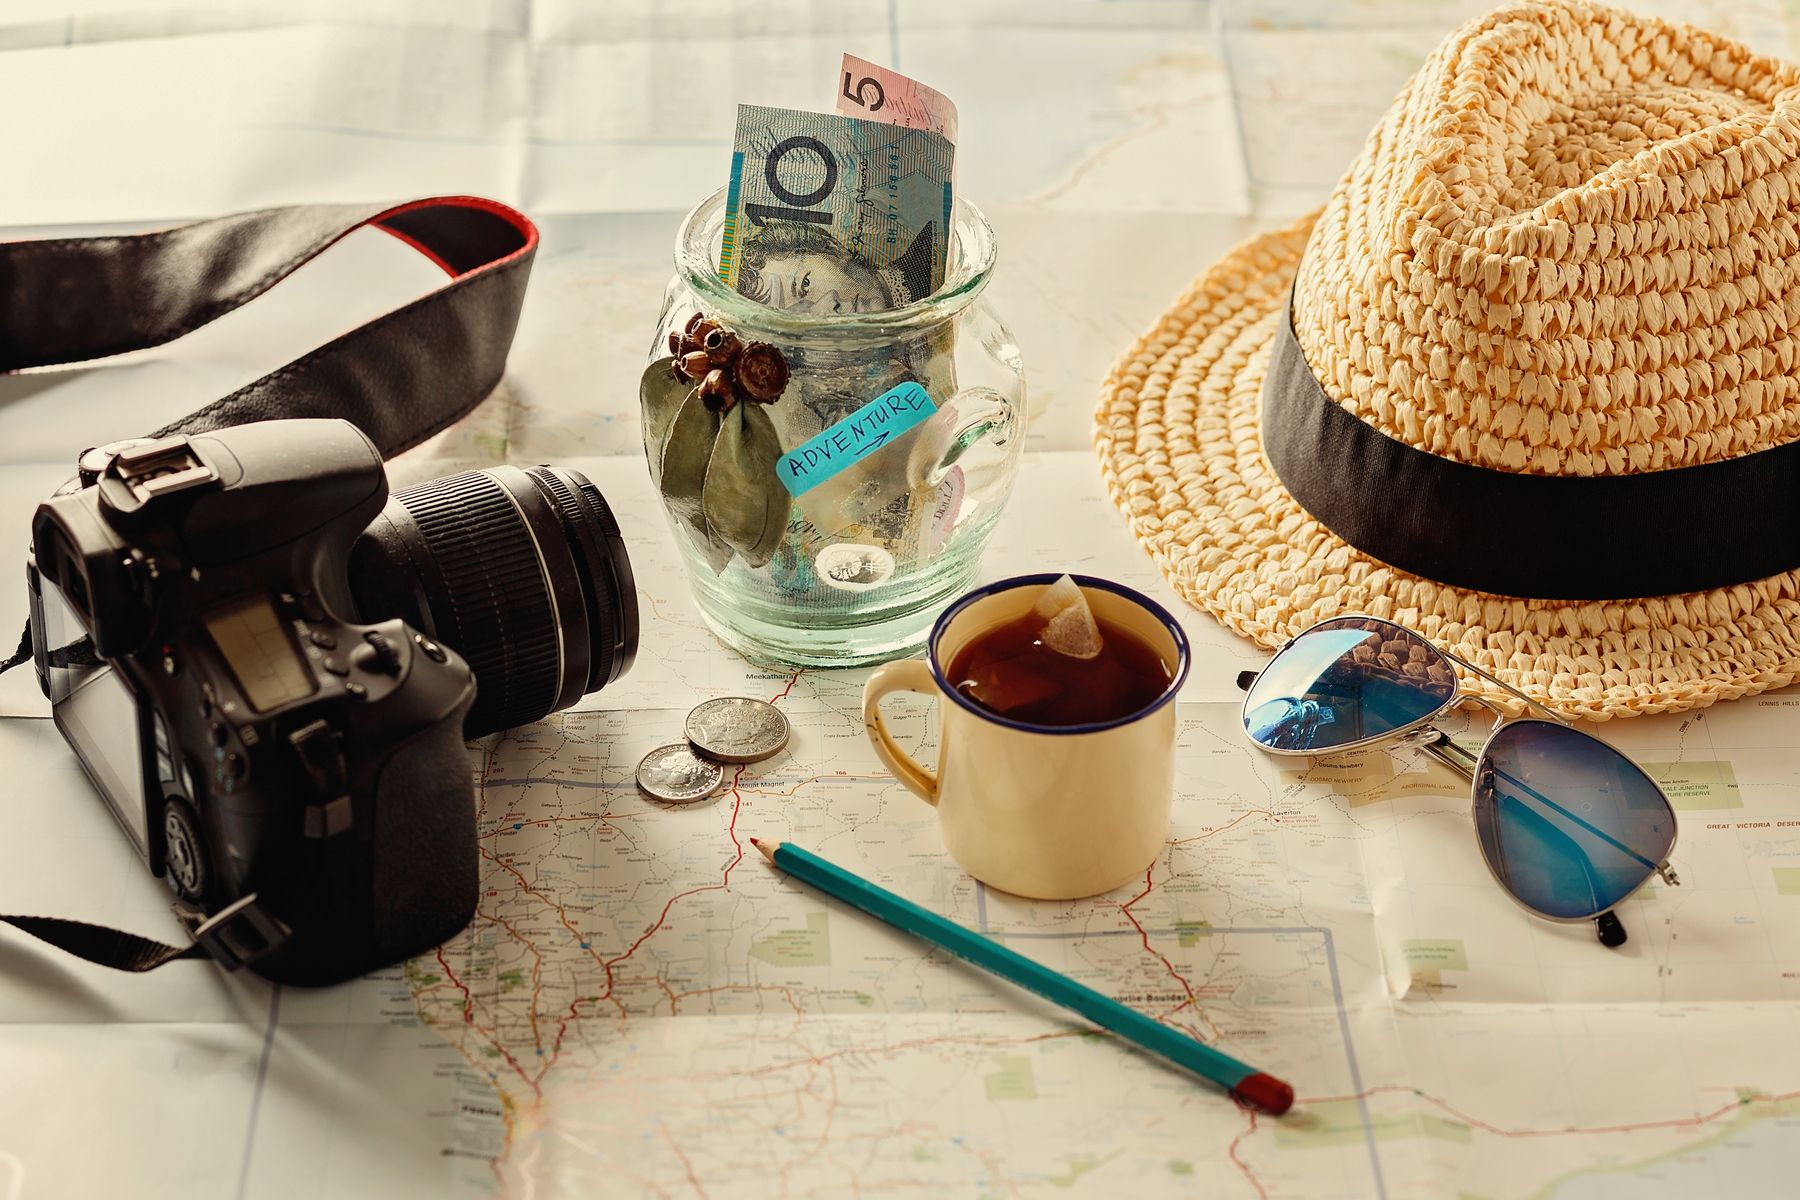 Assorted travel planning essentials such as sunglasses, money and a camera